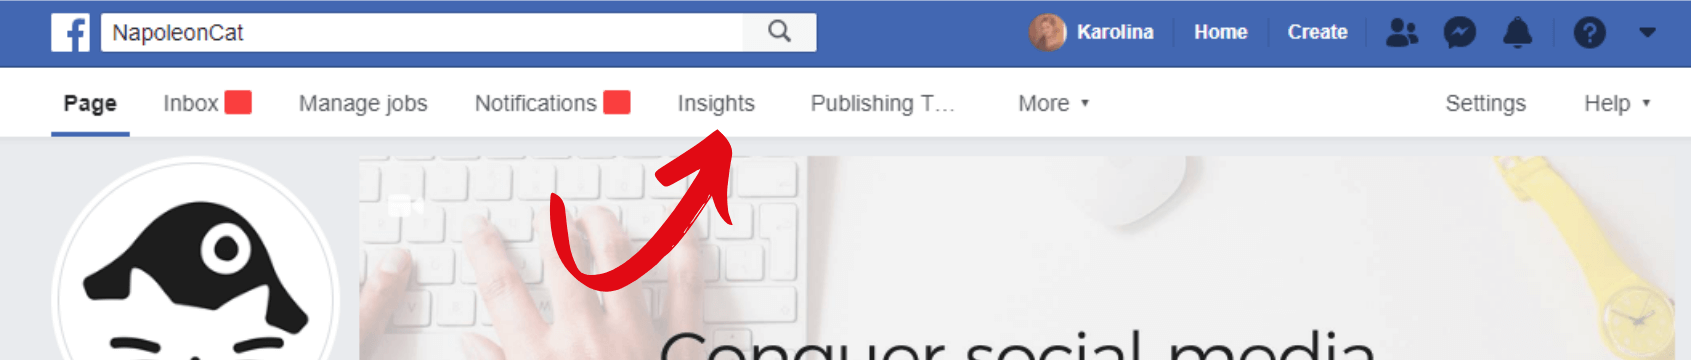 How to access Facebook Insights